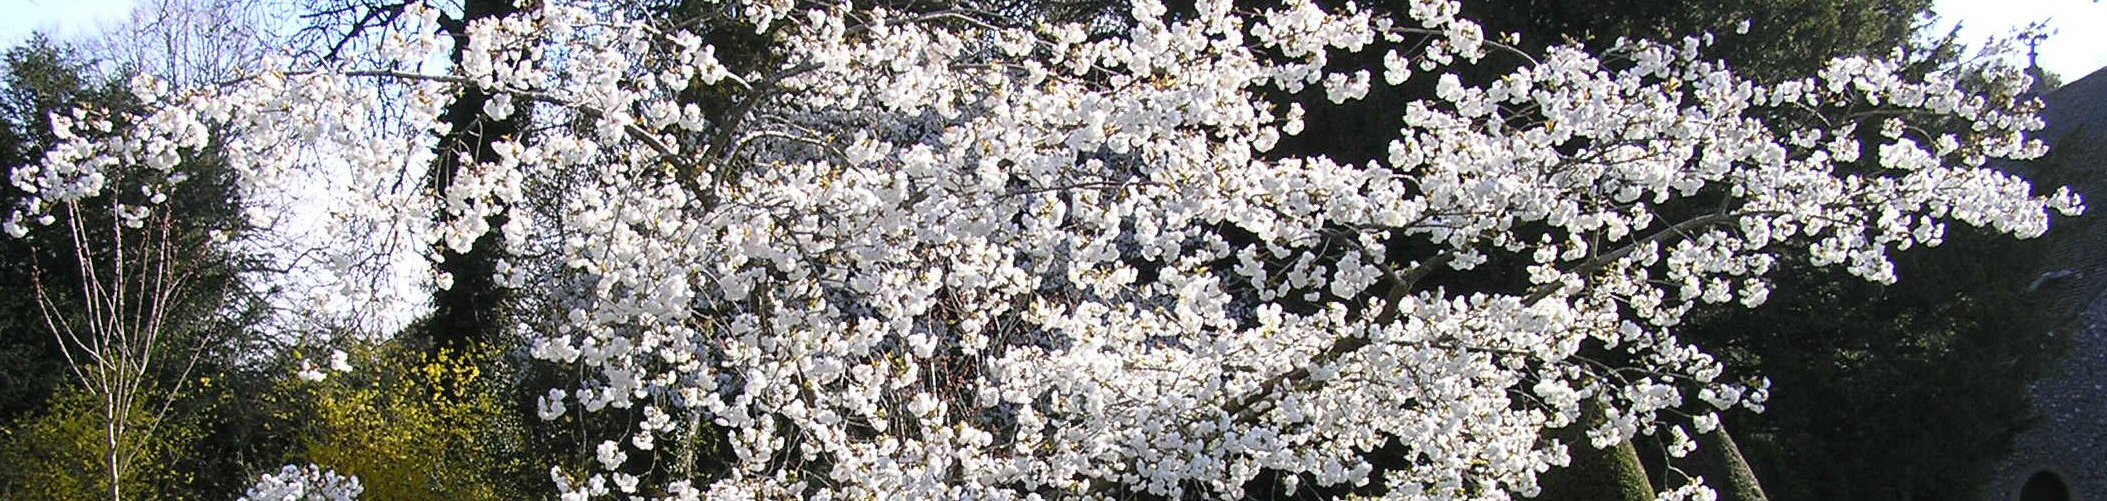 Prunus shirotea